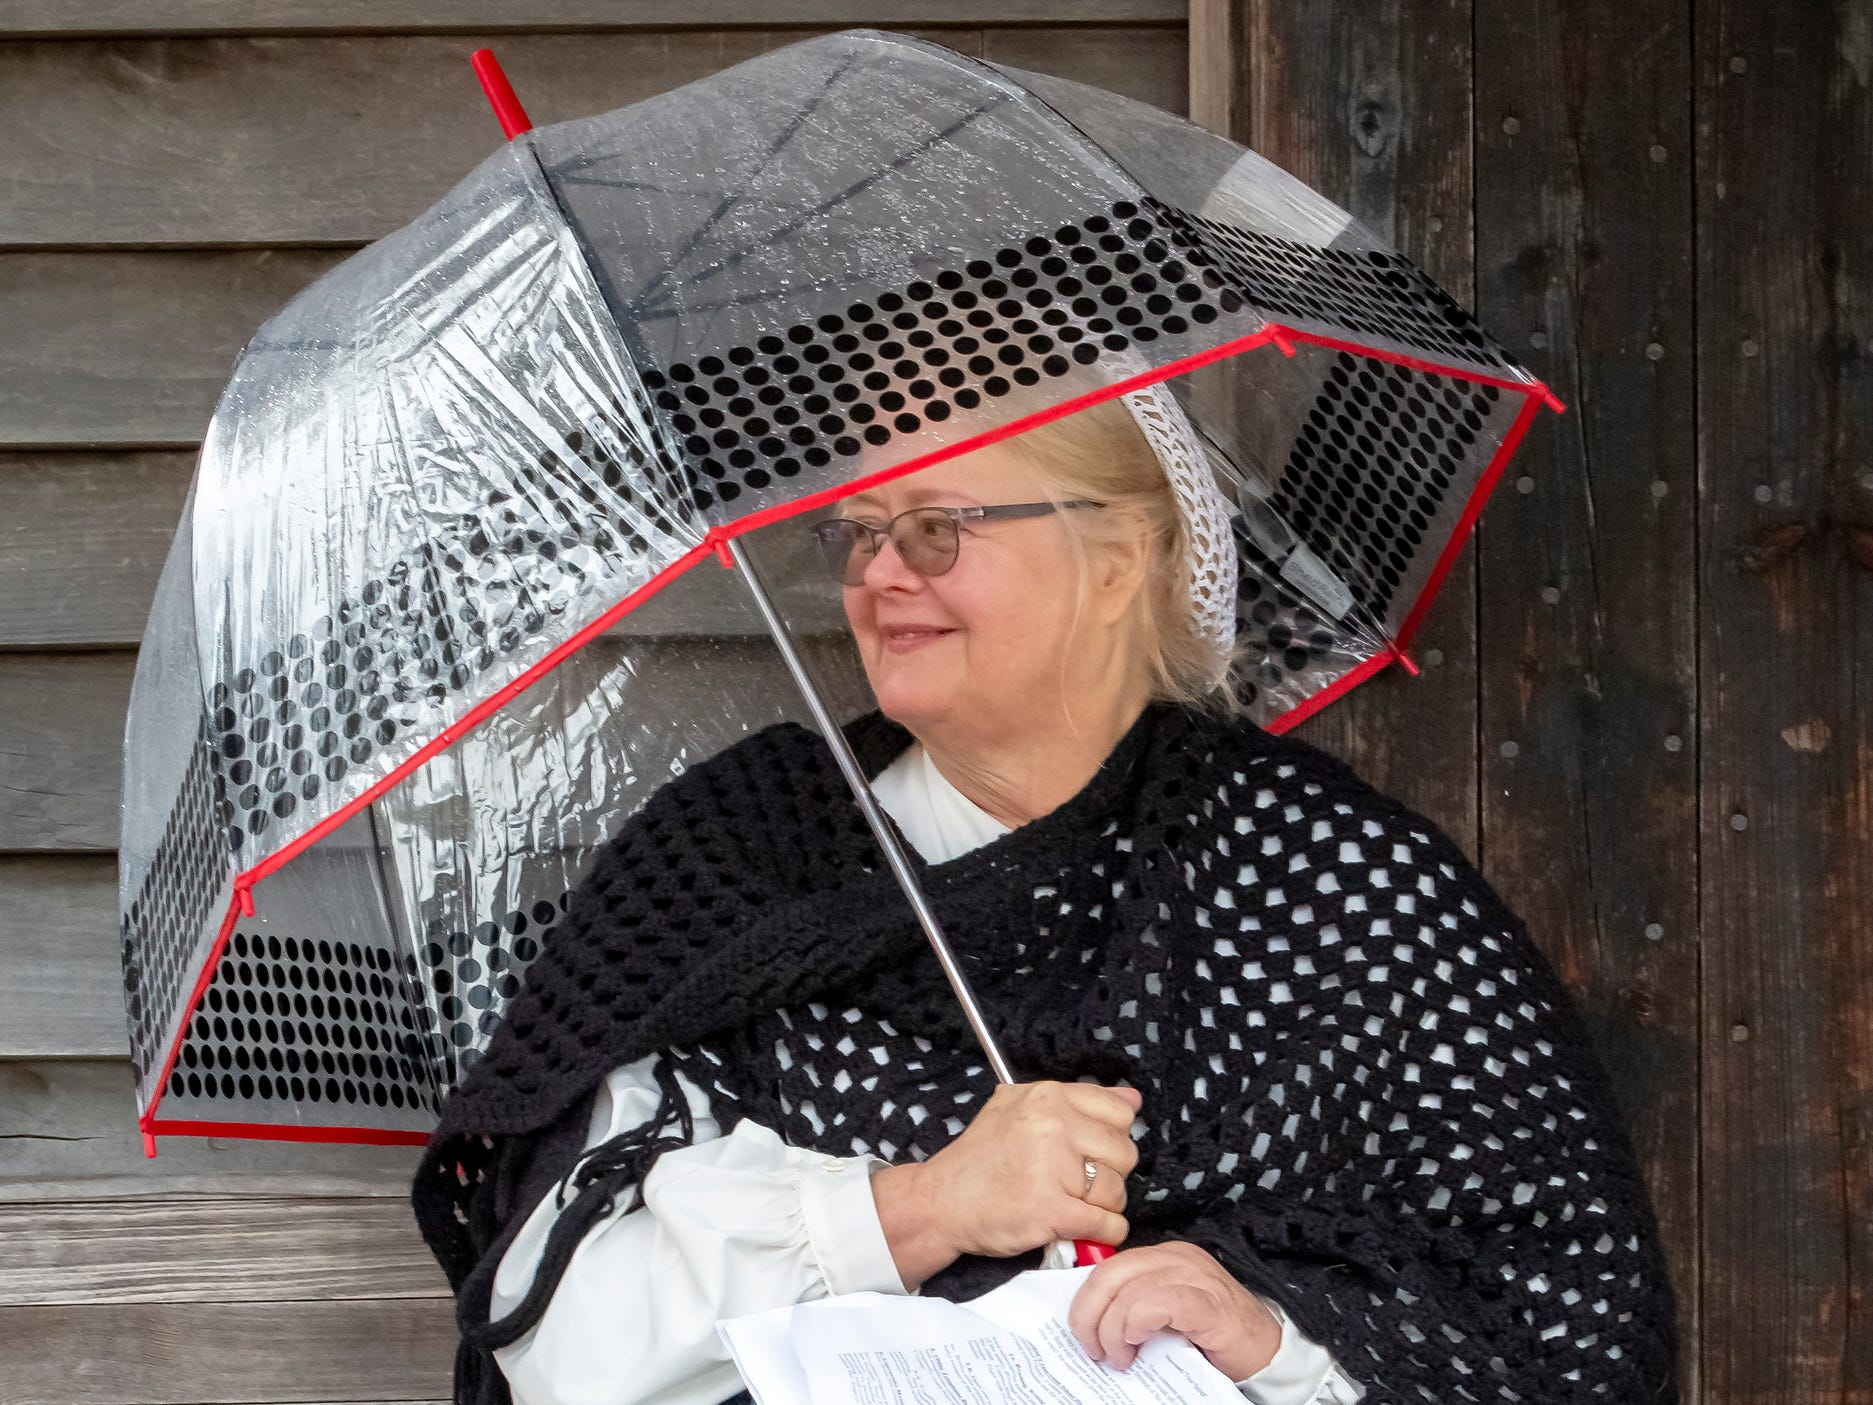 Volunteer Diane Weaver stays dry under her umbrella at the 43rd annual Harvest Days celebration held at Cannonsburgh Villiage.